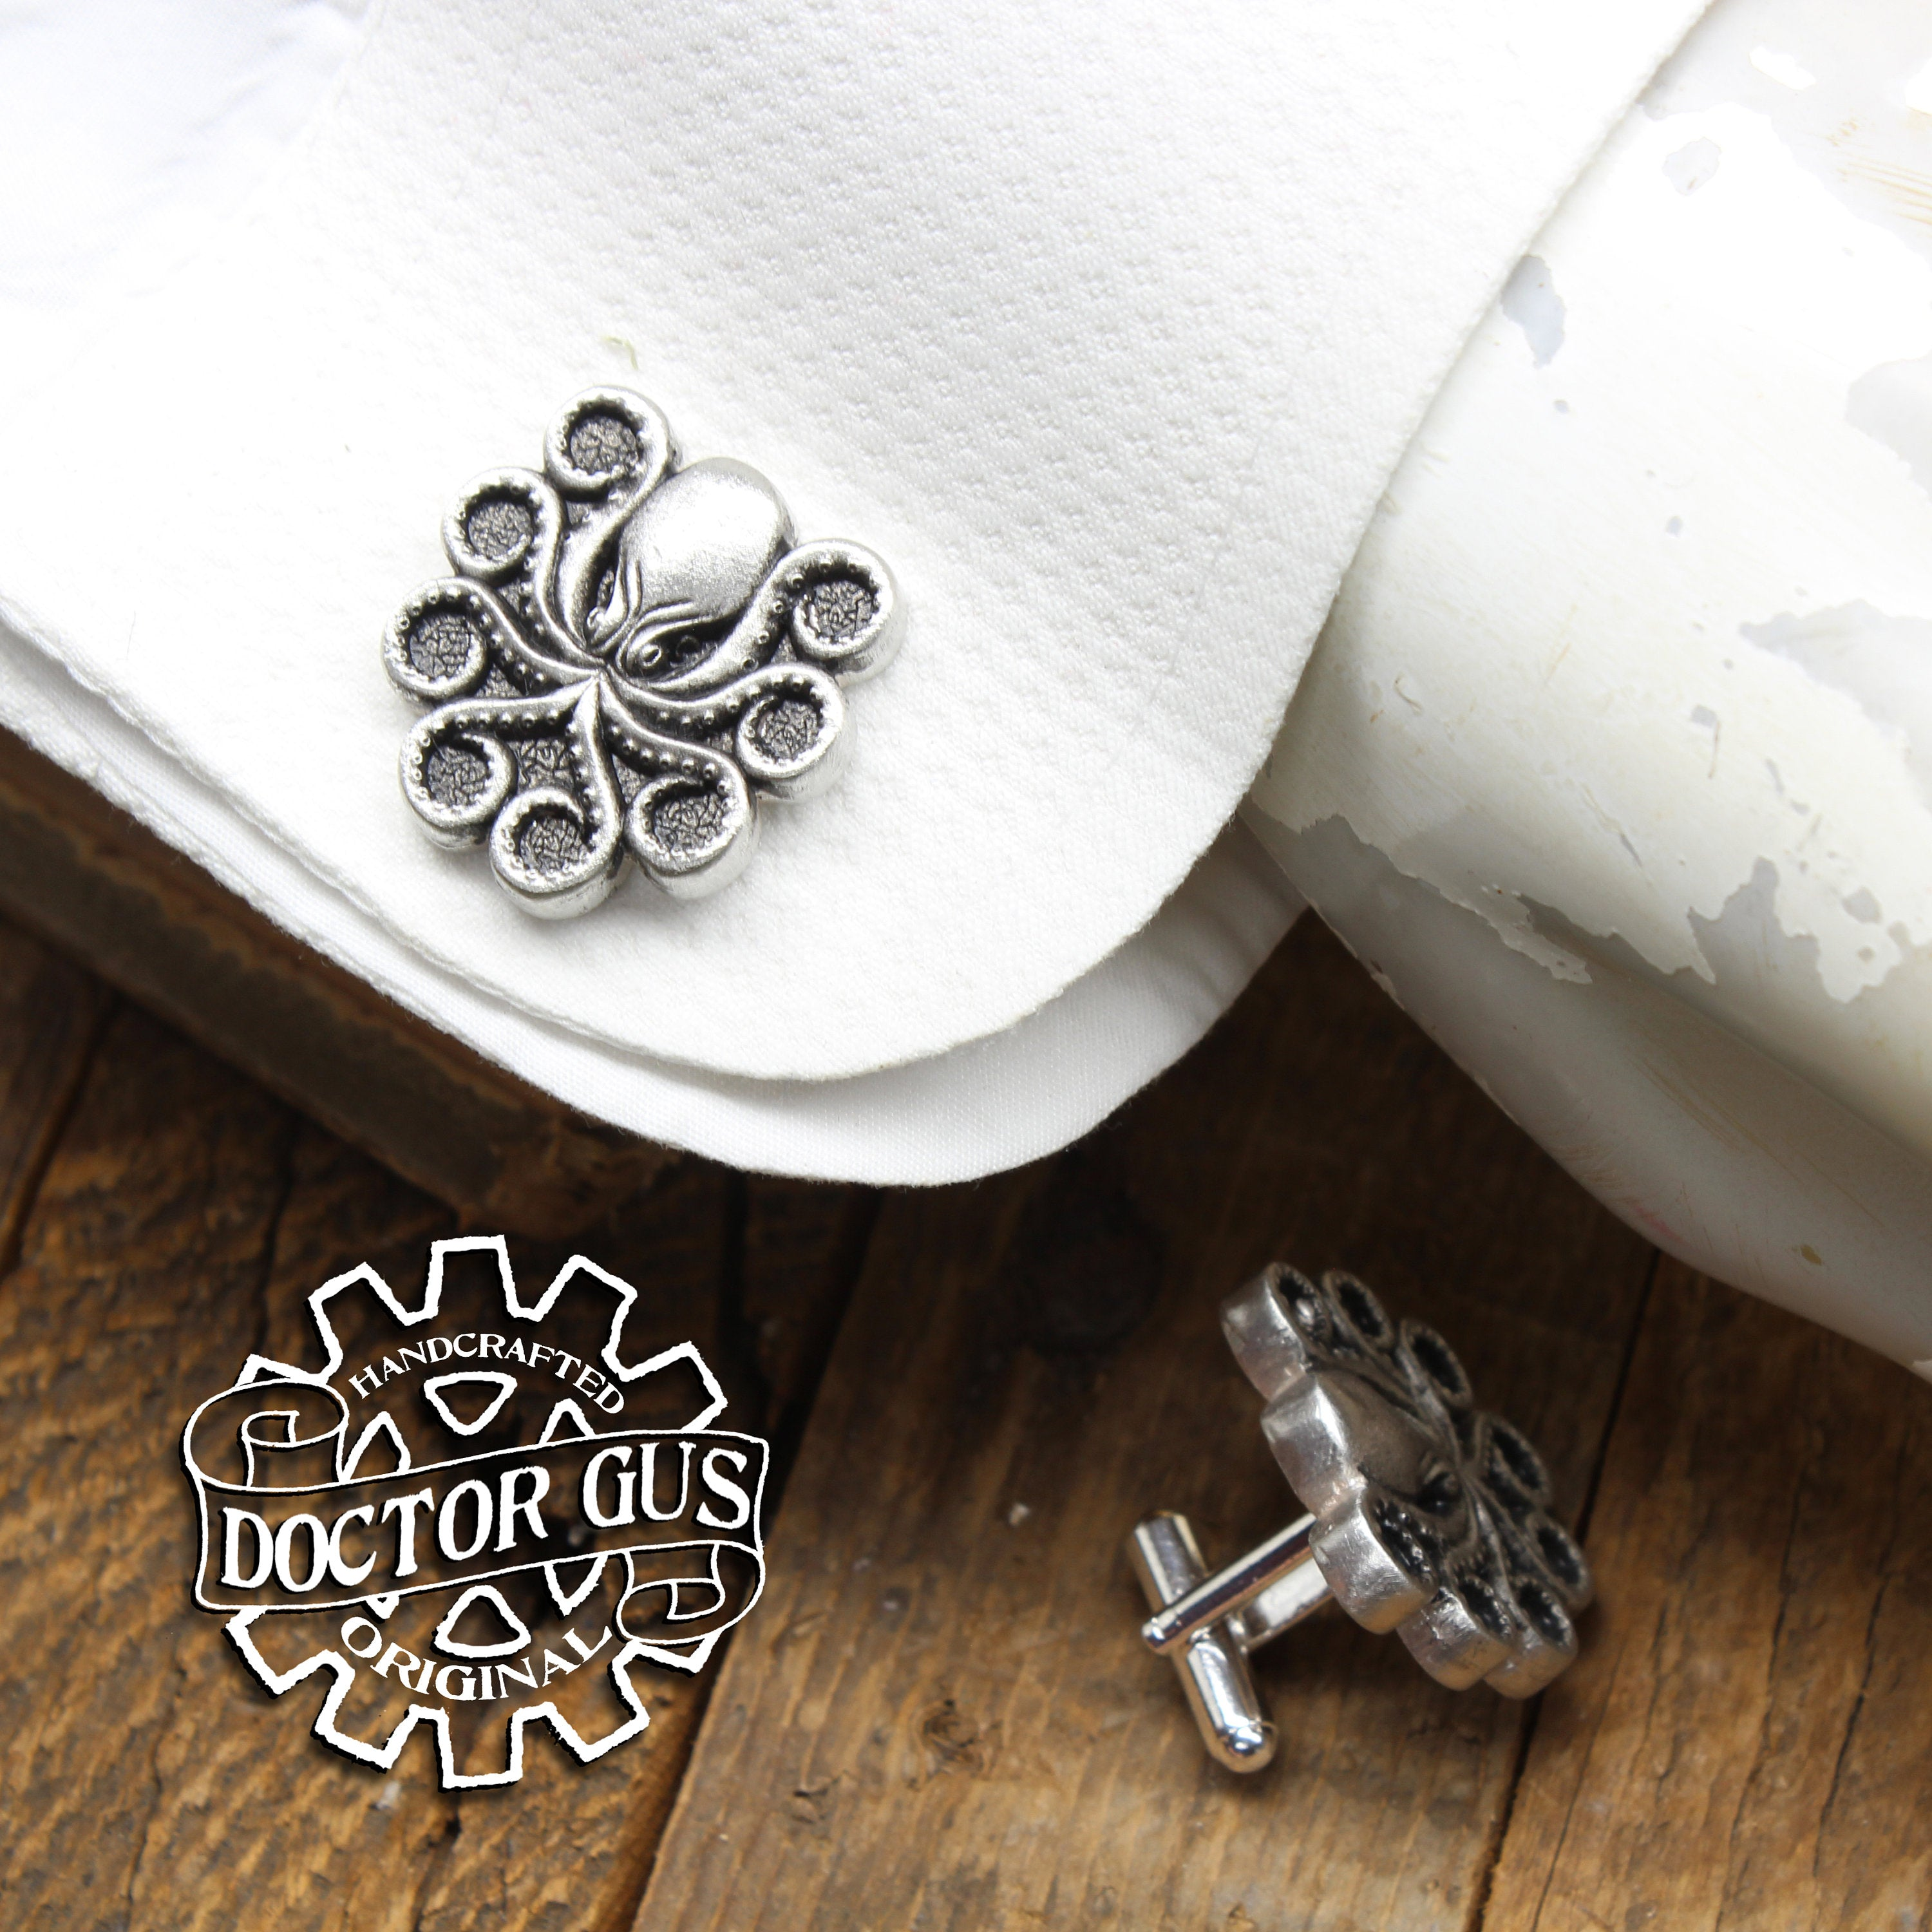 Octopus Cuff Links - Tentacle Cephalopod Accessories by Doctor Gus - Suit and Tie - Men's Gifts - Cthulhu Lovecraft Steampunk Wedding Groom